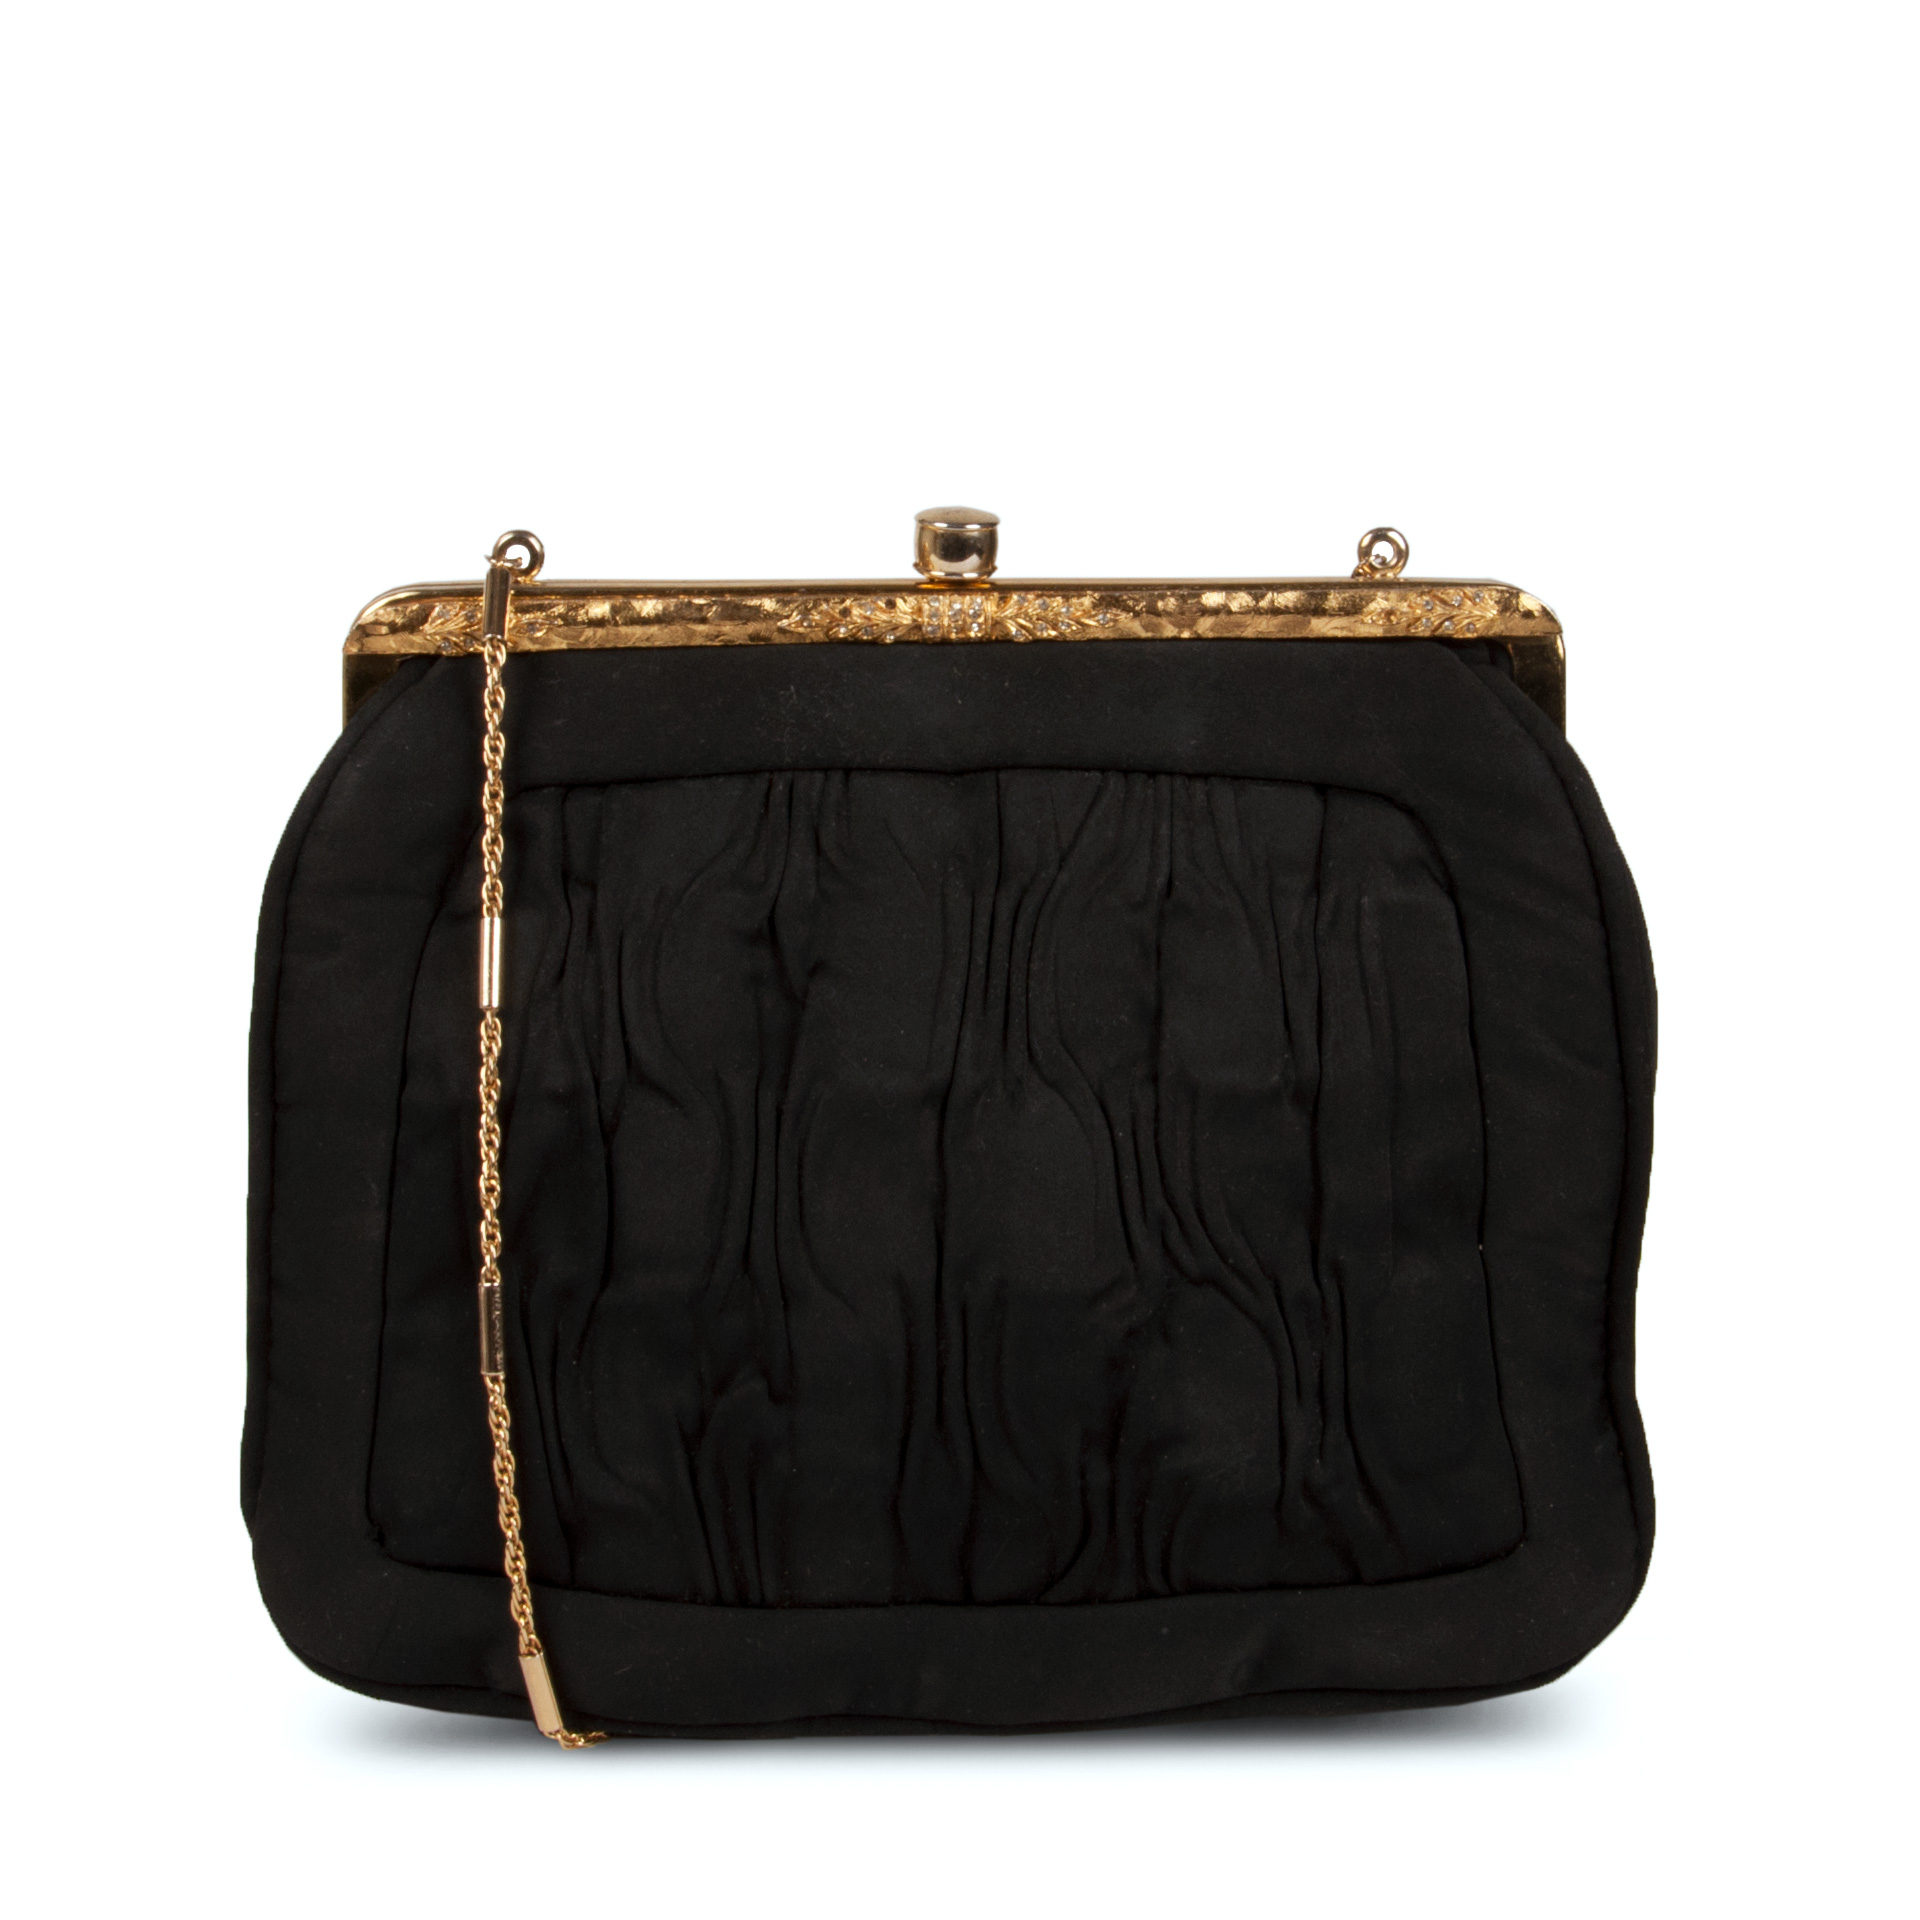 Lou Taylor Clutch Bag With Mirror Inside